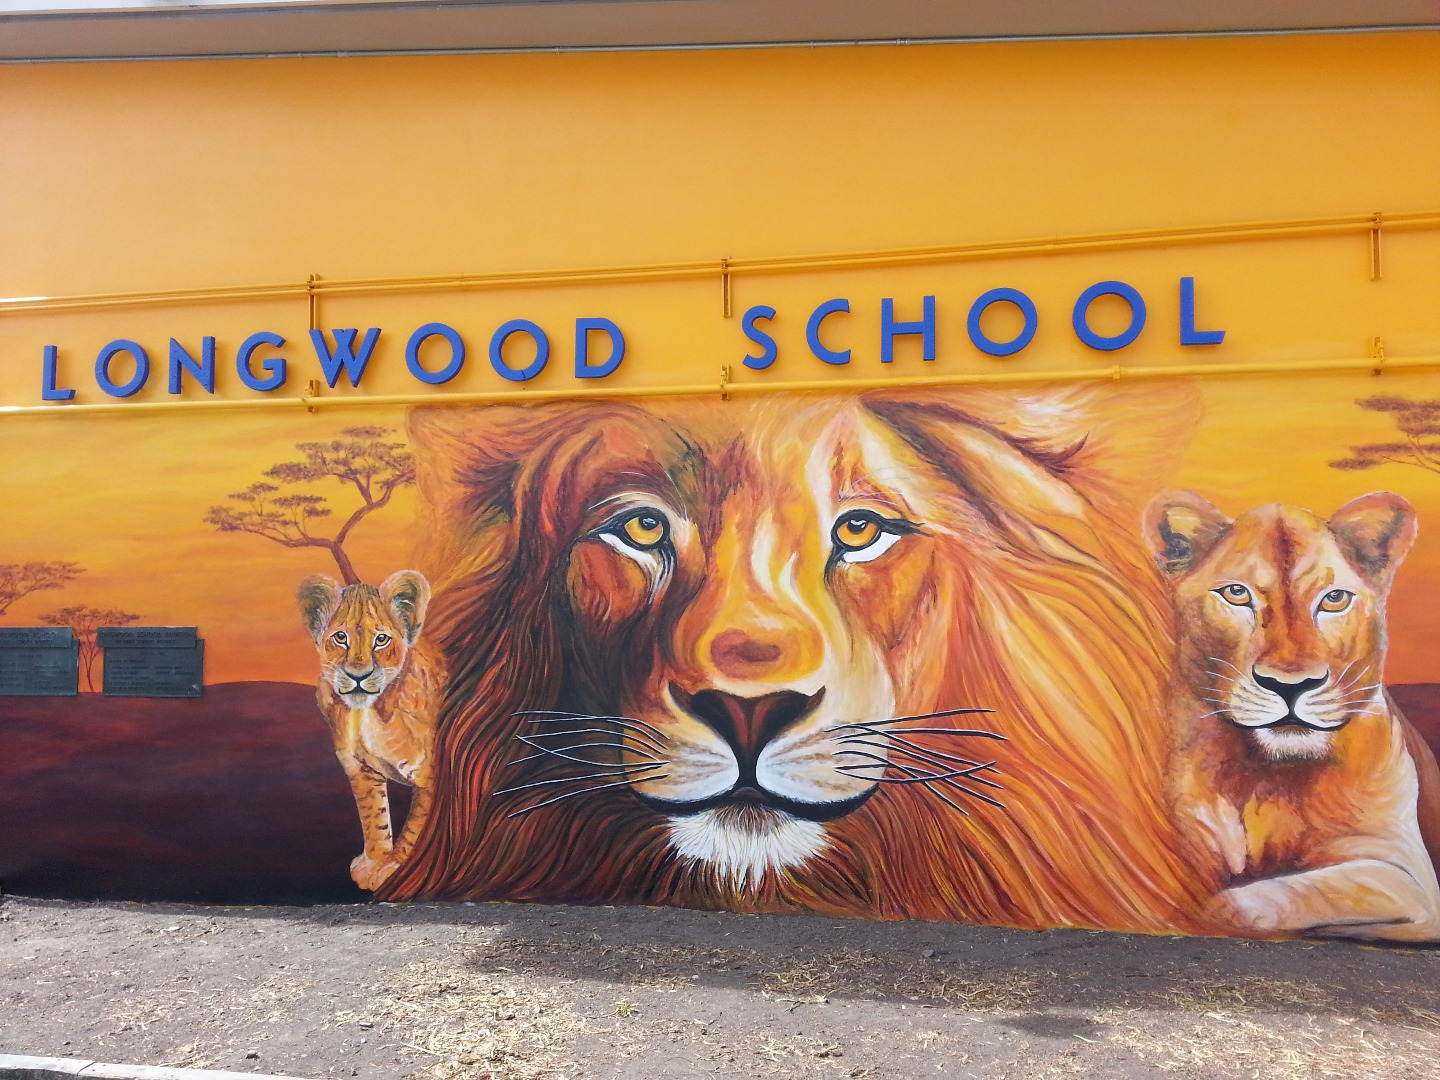 Mural art: Lions, school entrance, Longwood School